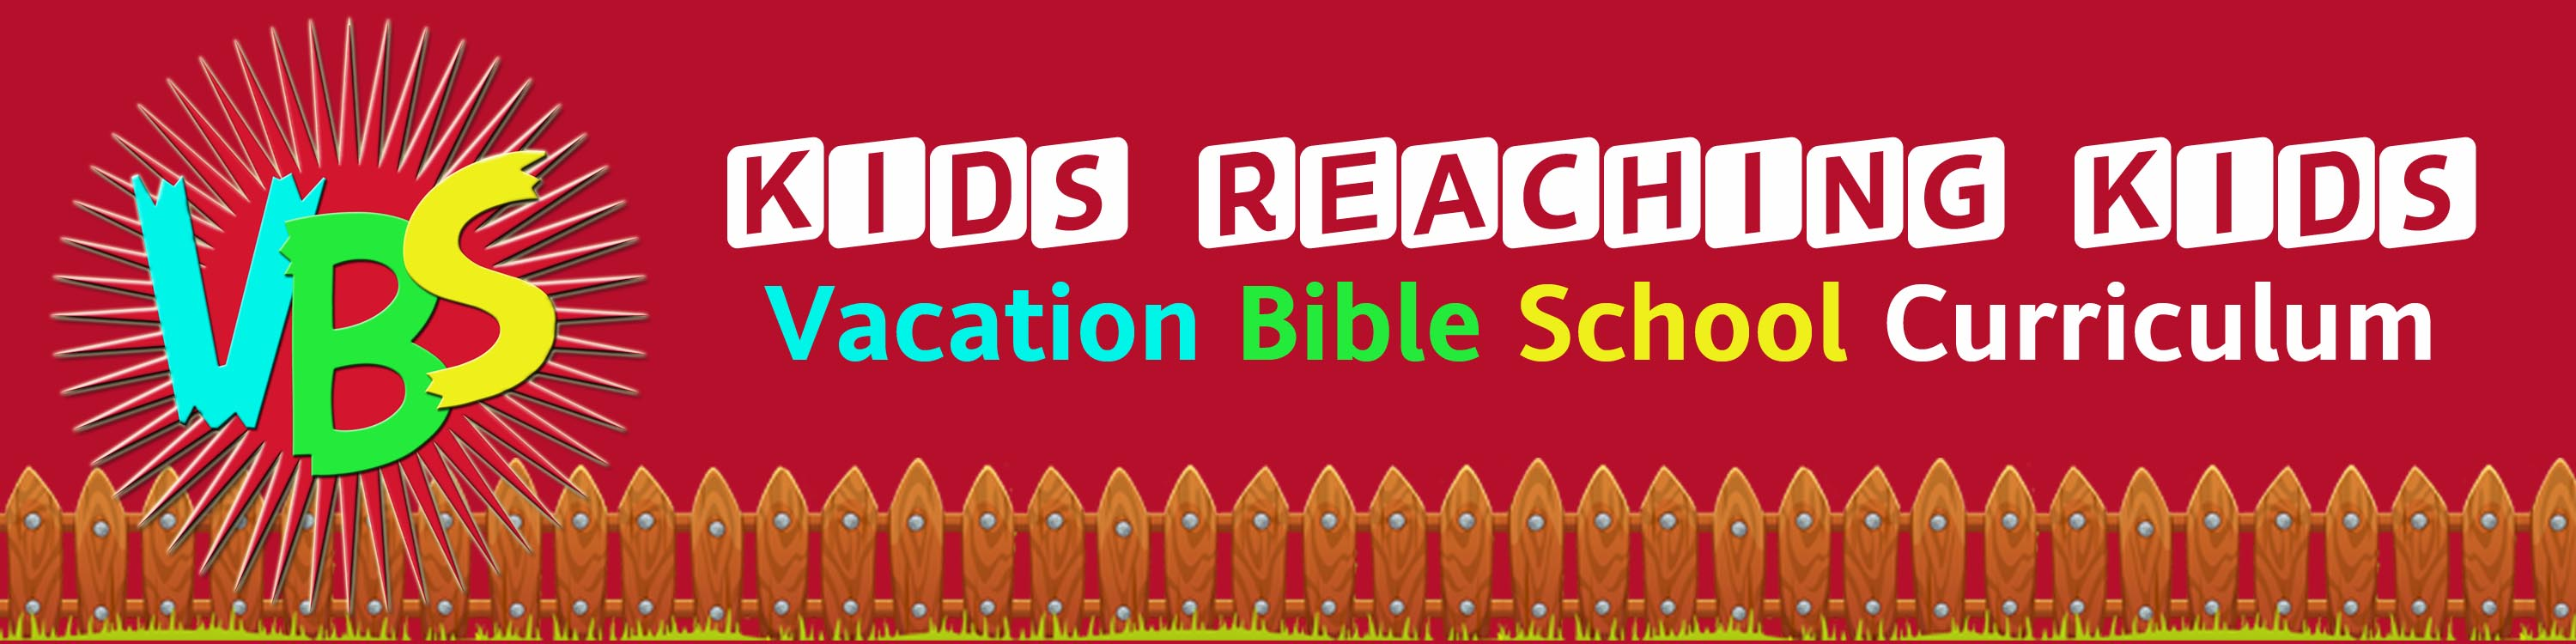 VBS Website Header 2017